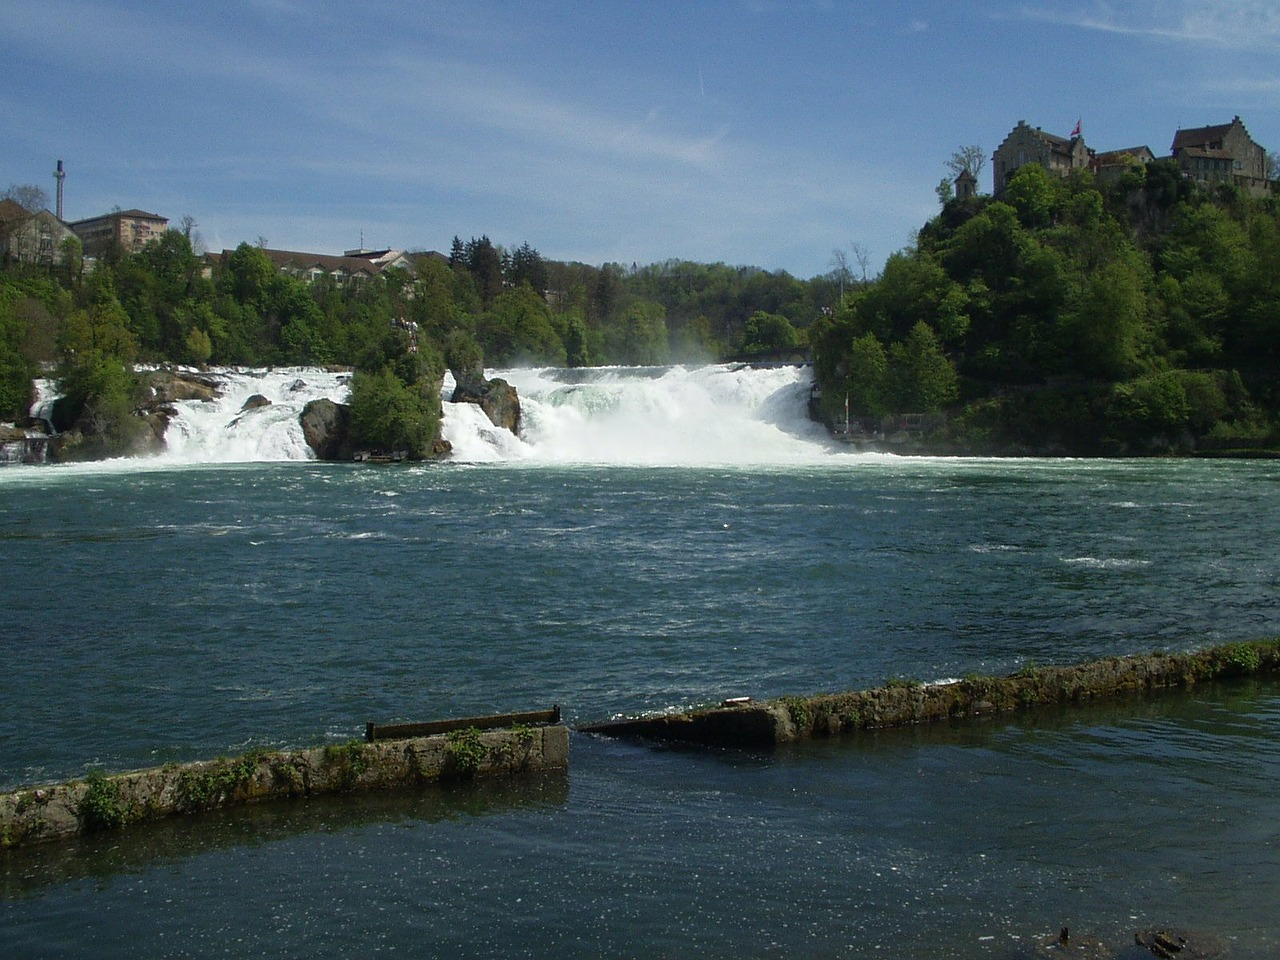 rhine falls,schaffhausen,rhine,waterfall,river,germany,free pictures, free photos, free images, royalty free, free illustrations, public domain